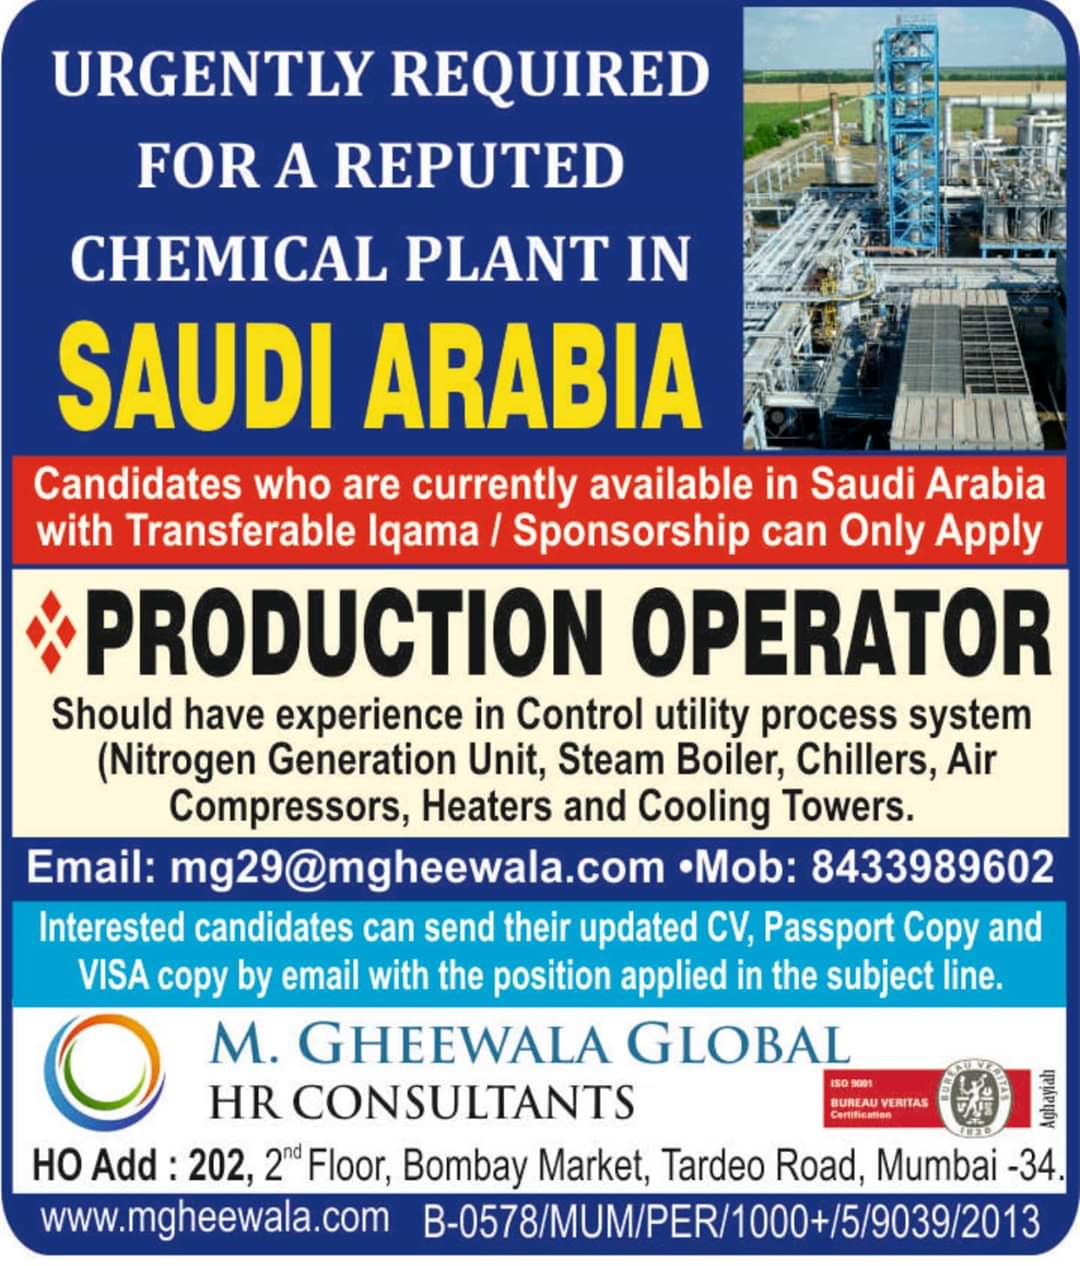 URGENTLY REQUIRED FOR A REPUTED CHEMICAL PLANT